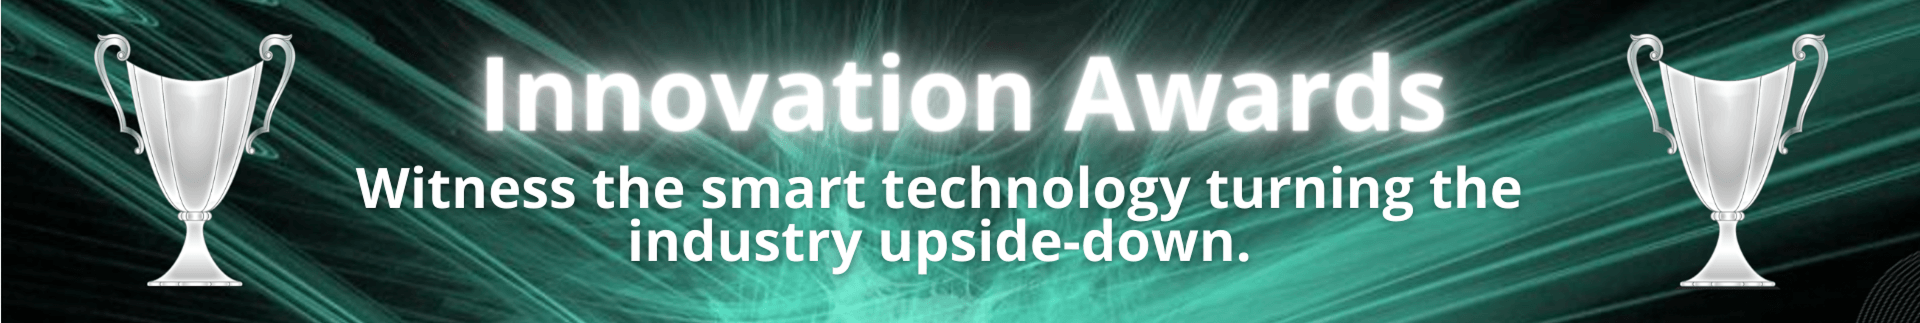 Innovation Awards. Witness the smart technology turning the industry upside-down.